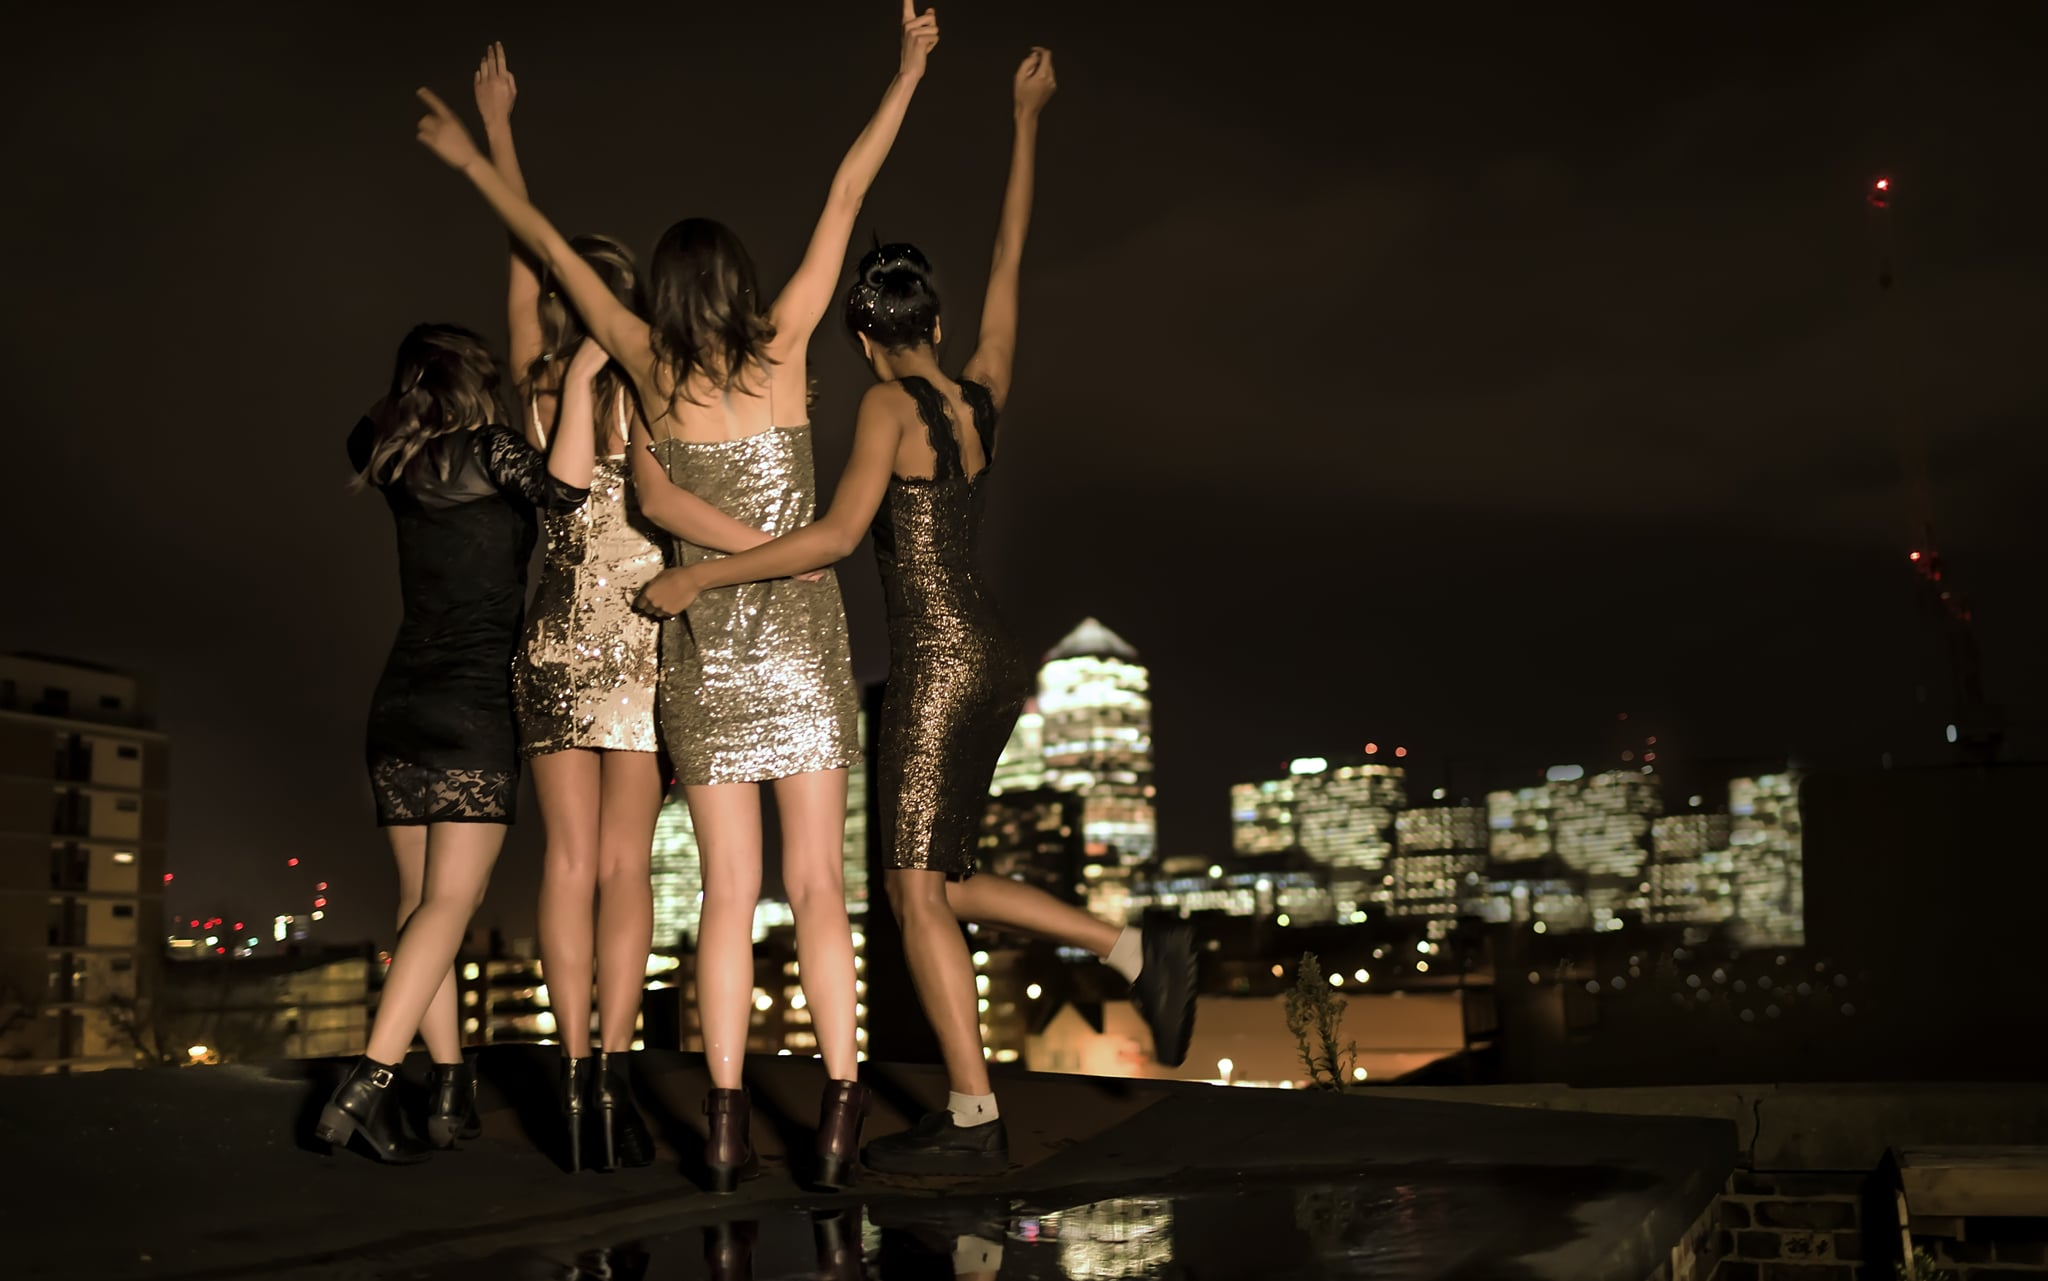 Destination Bachelorette Parties Cost So Much Money, and the Pressure to Attend Is Unfair